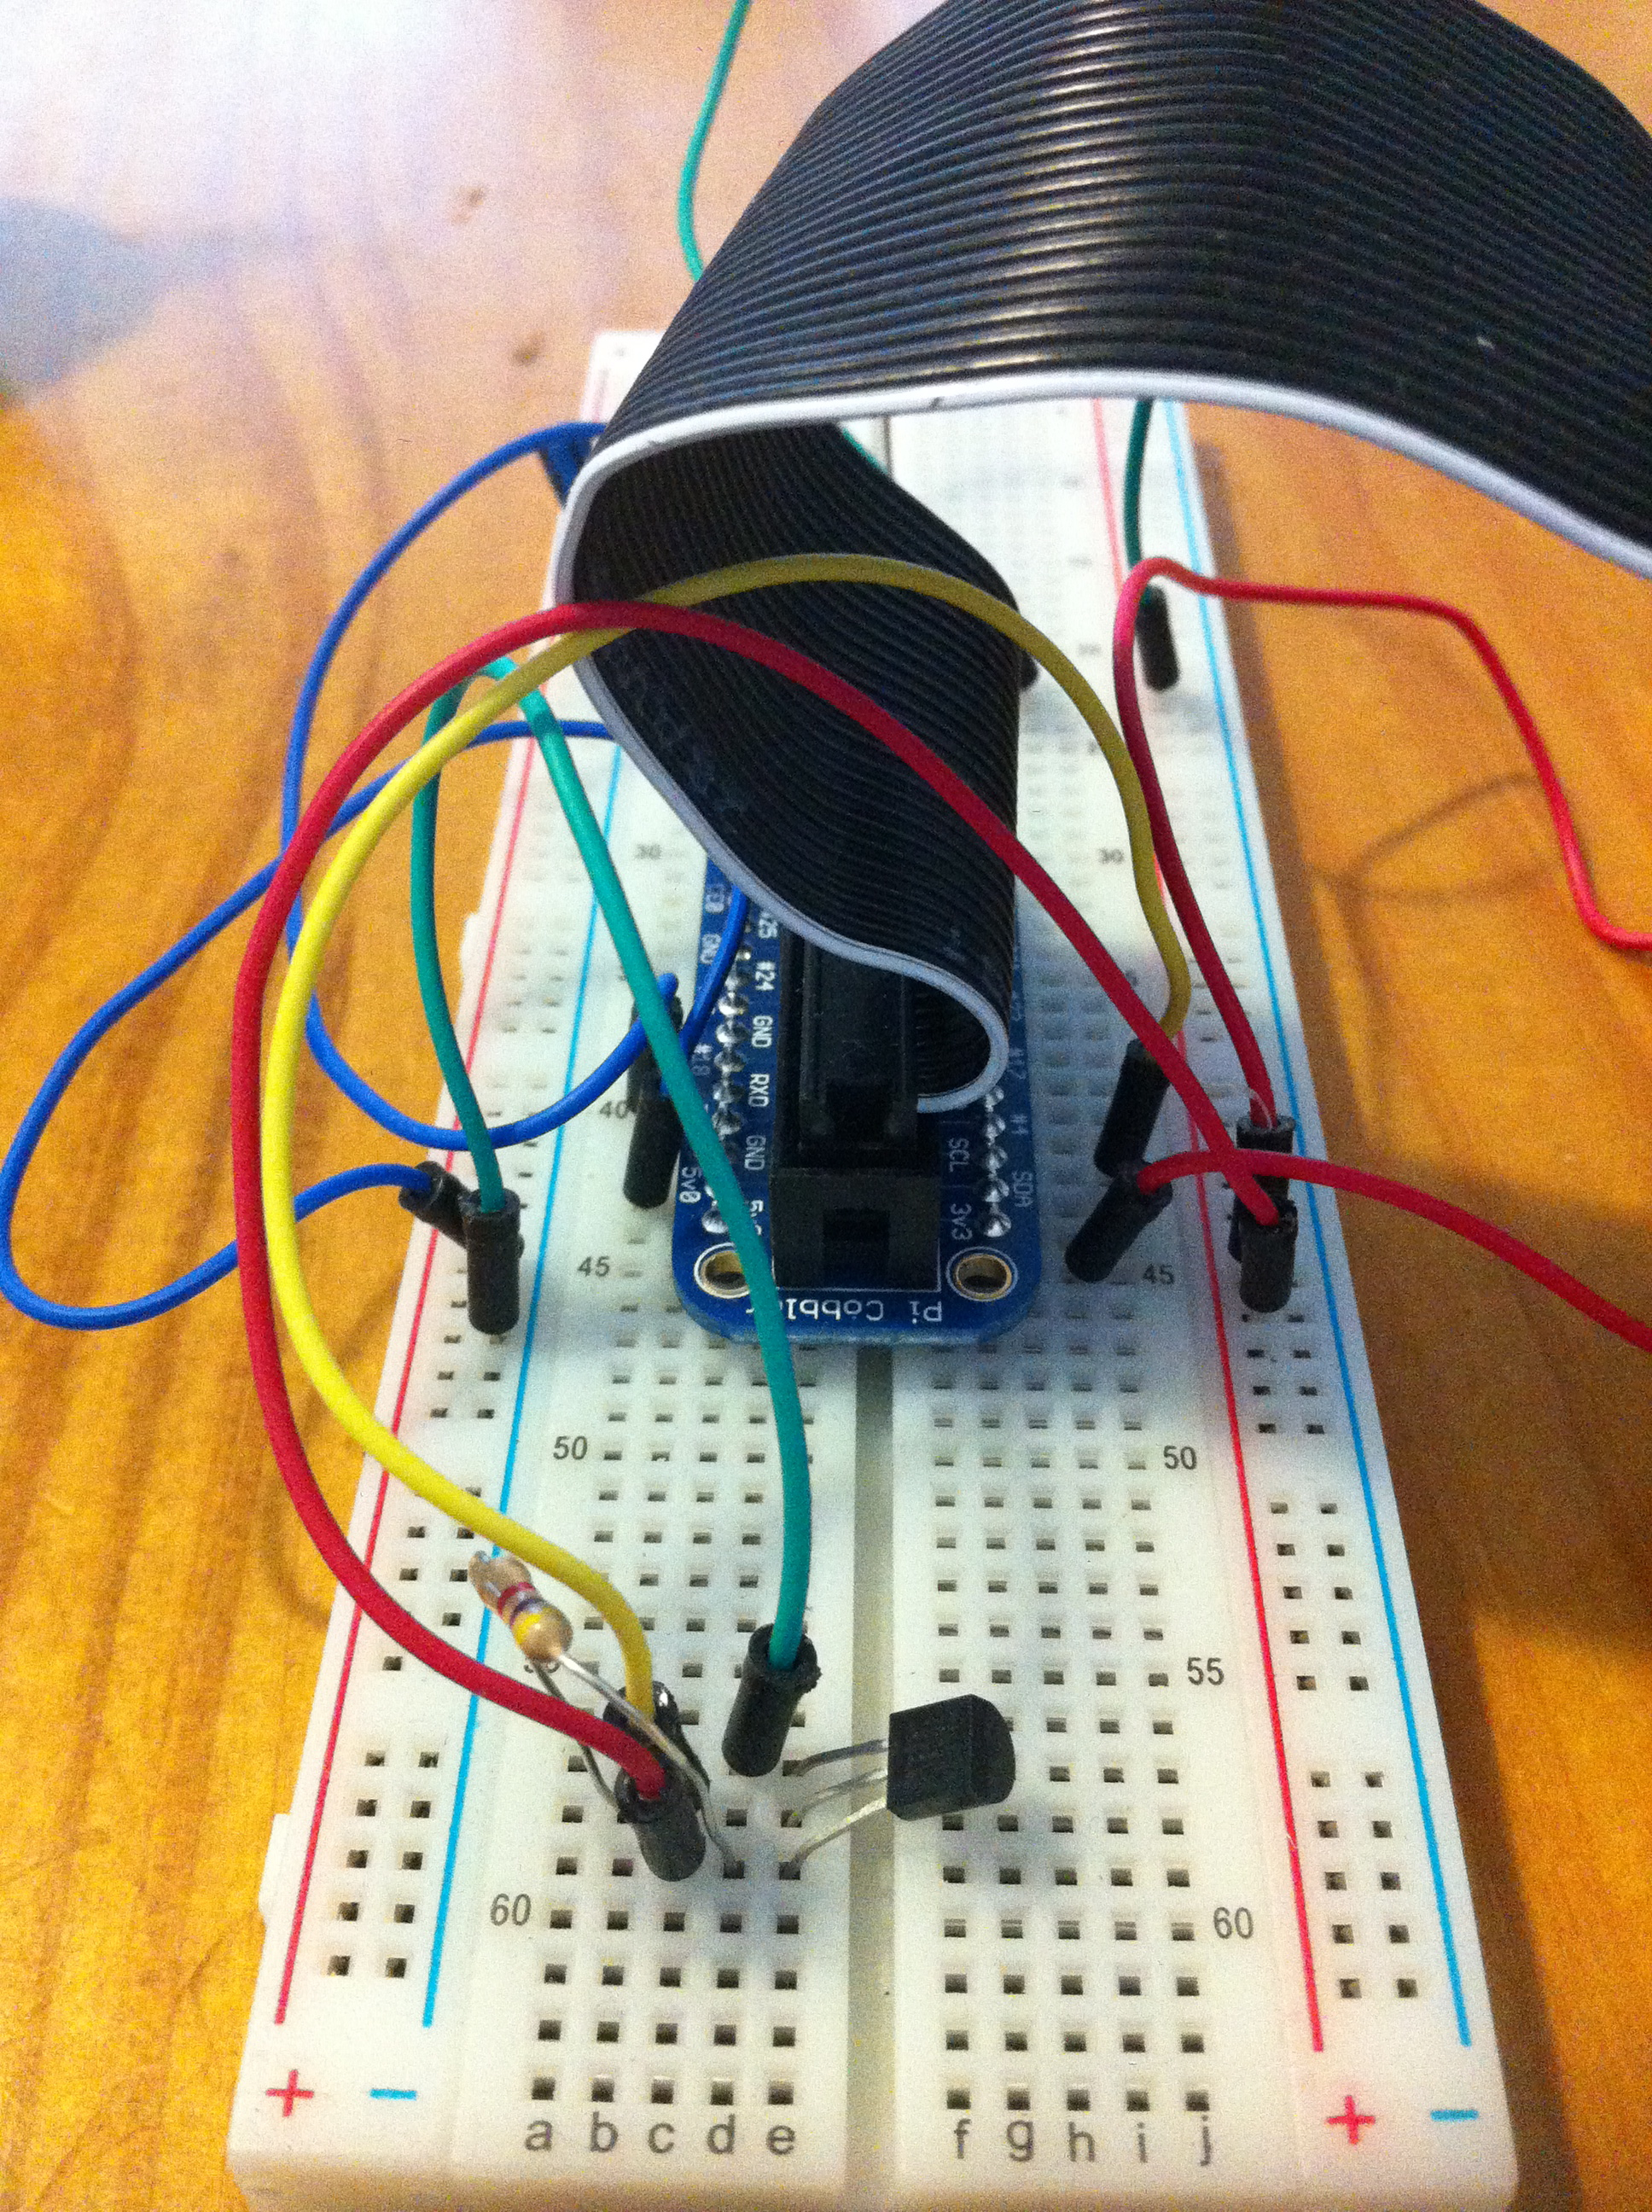 Breadboard with wiring for temperature and light sensors.